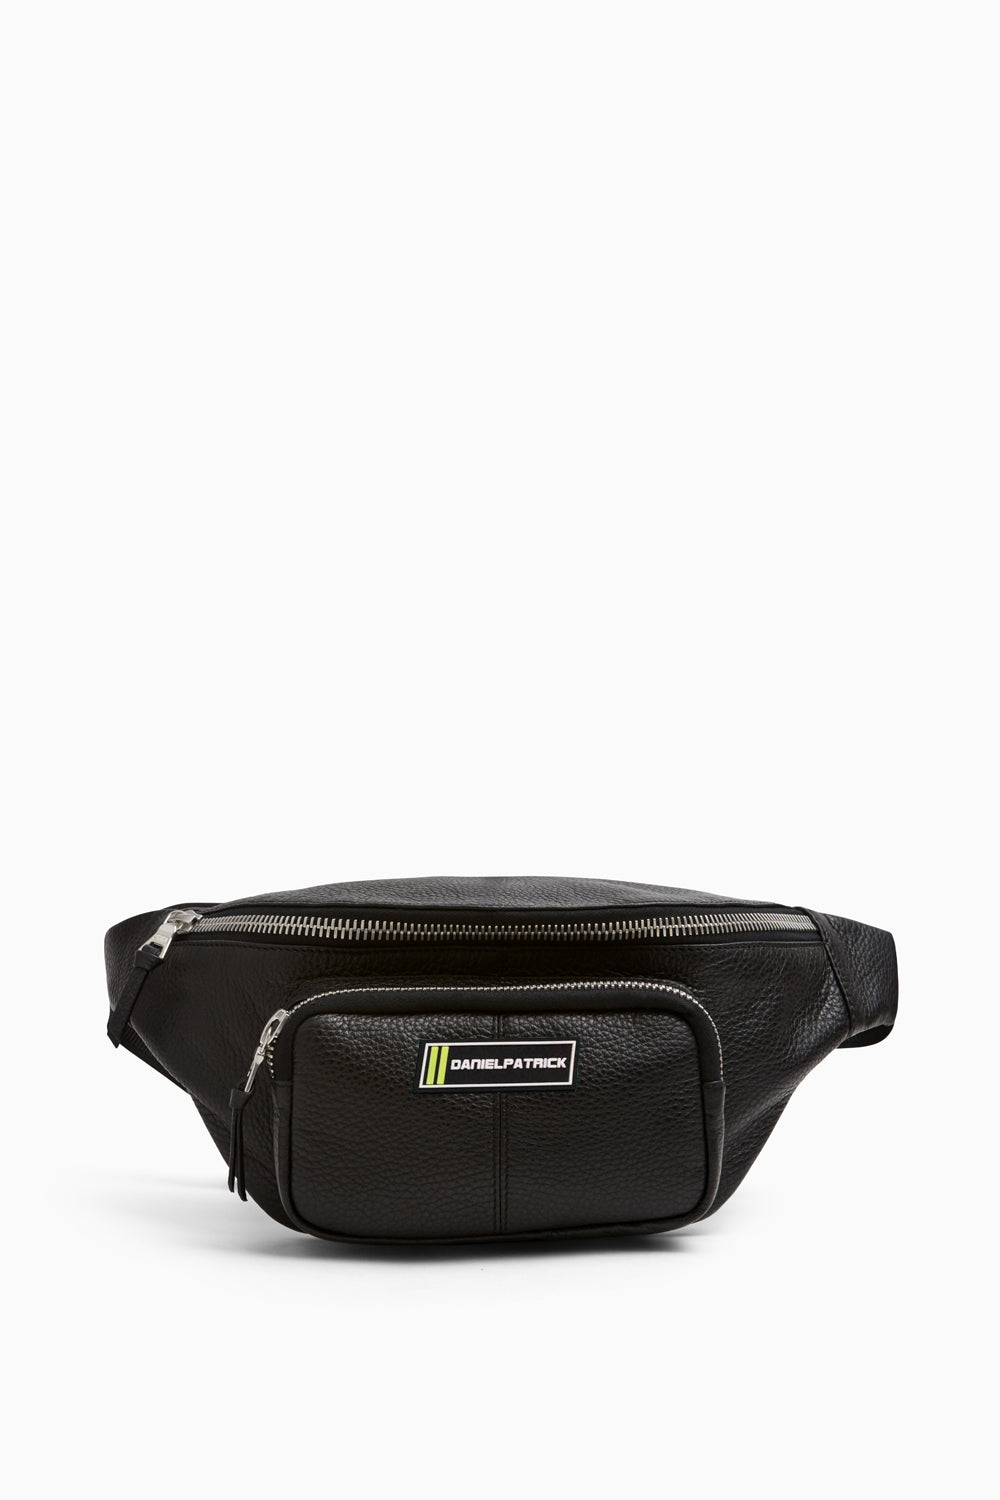 DP belt bag / black